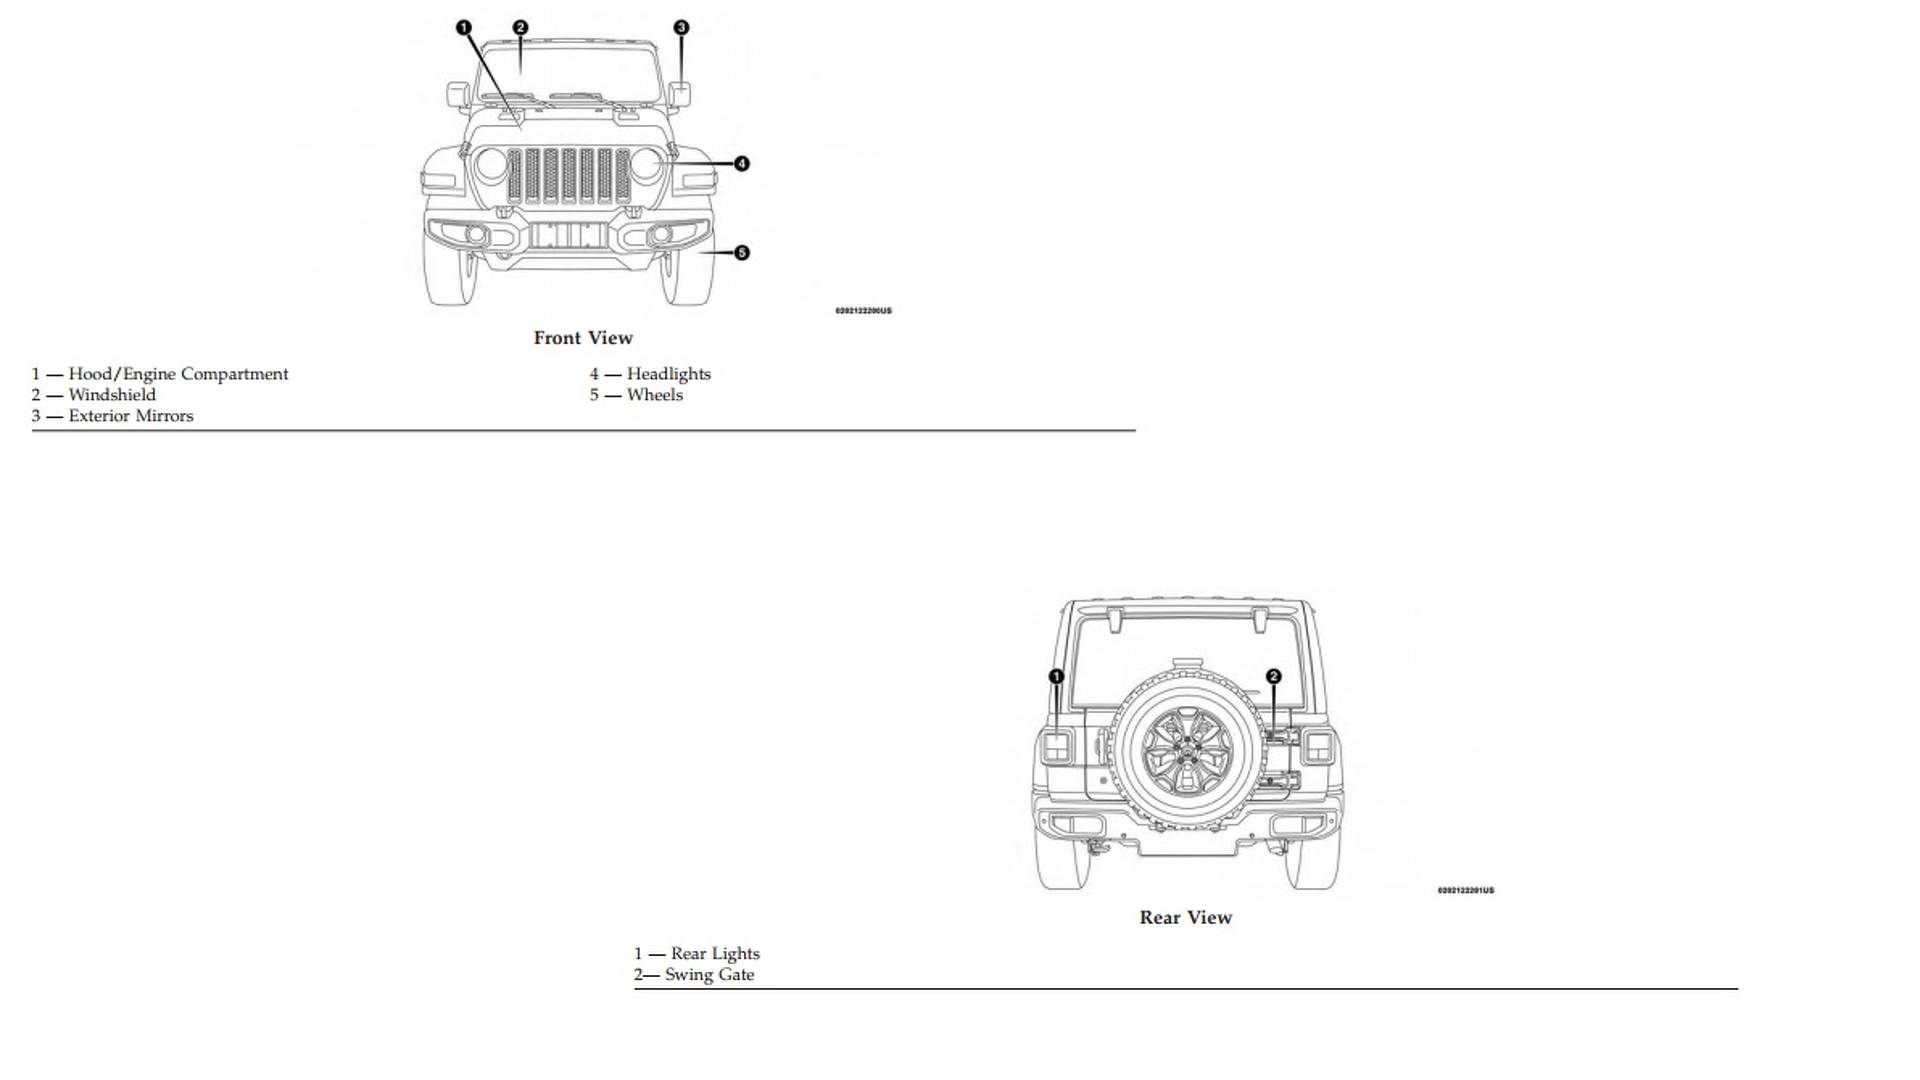 hight resolution of 1986 jeep cj7 wiring schematic images gallery jeep comanche wiring diagram html jeep comanche timing